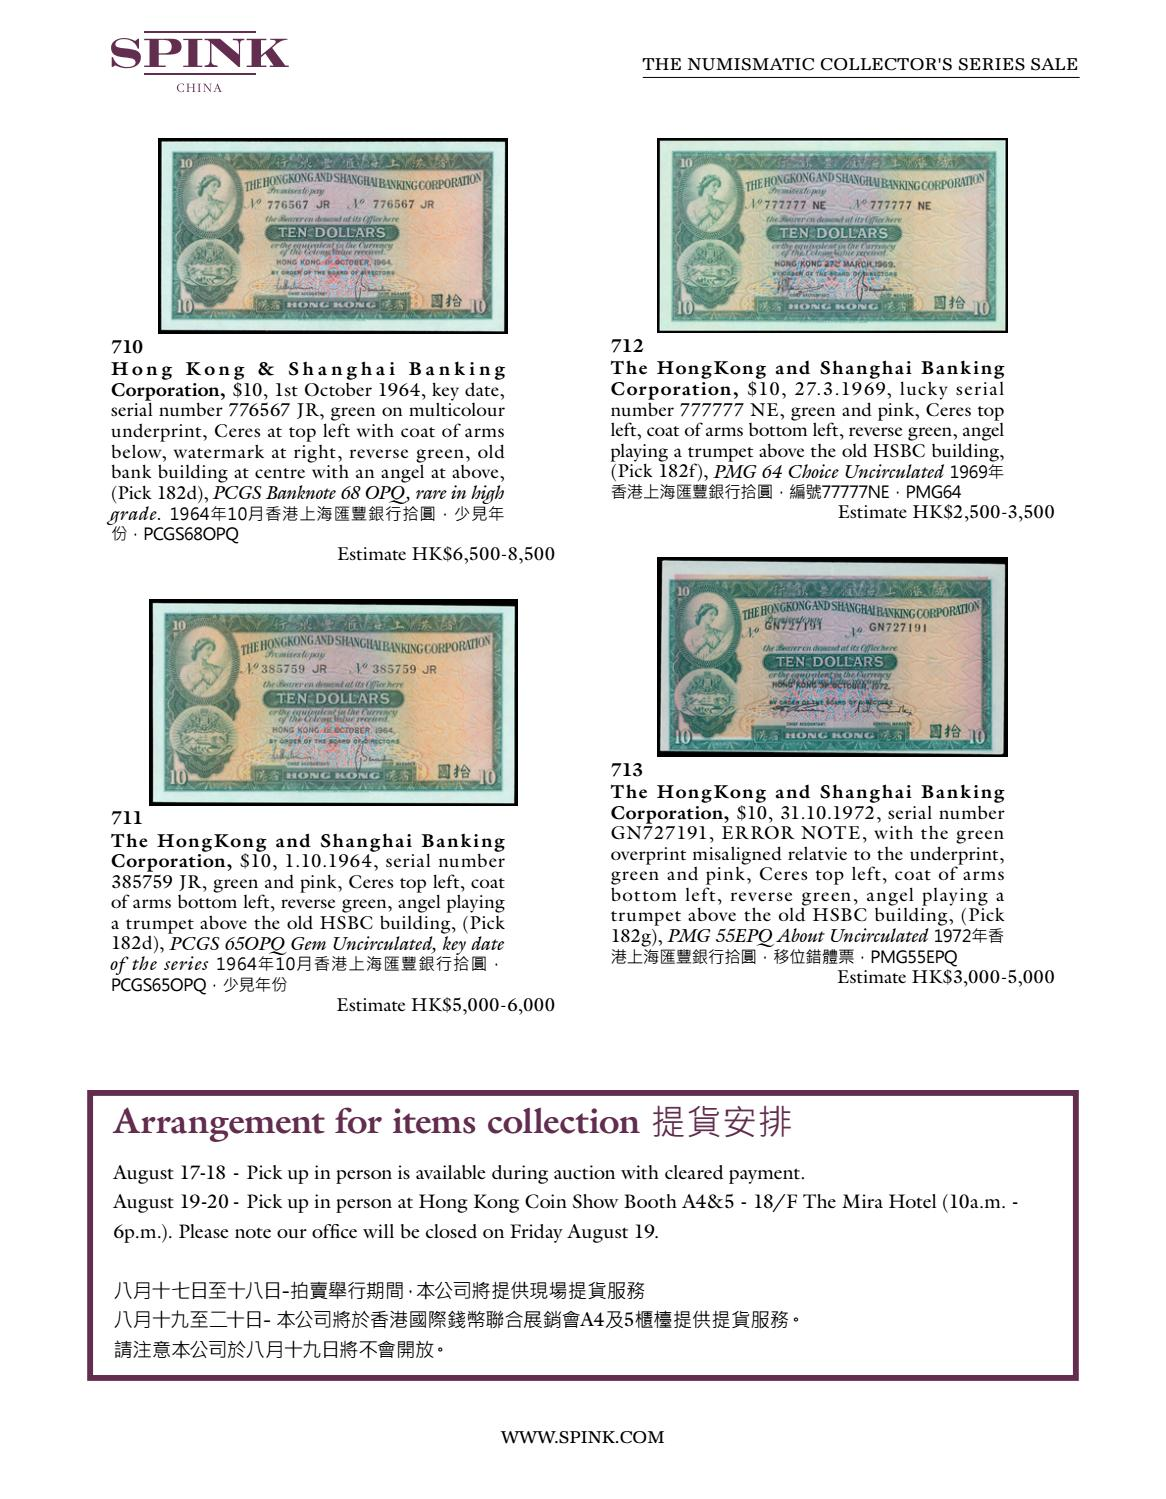 CSS23 - THE NUMISMATIC COLLECTOR'S SERIES by Spink and Son